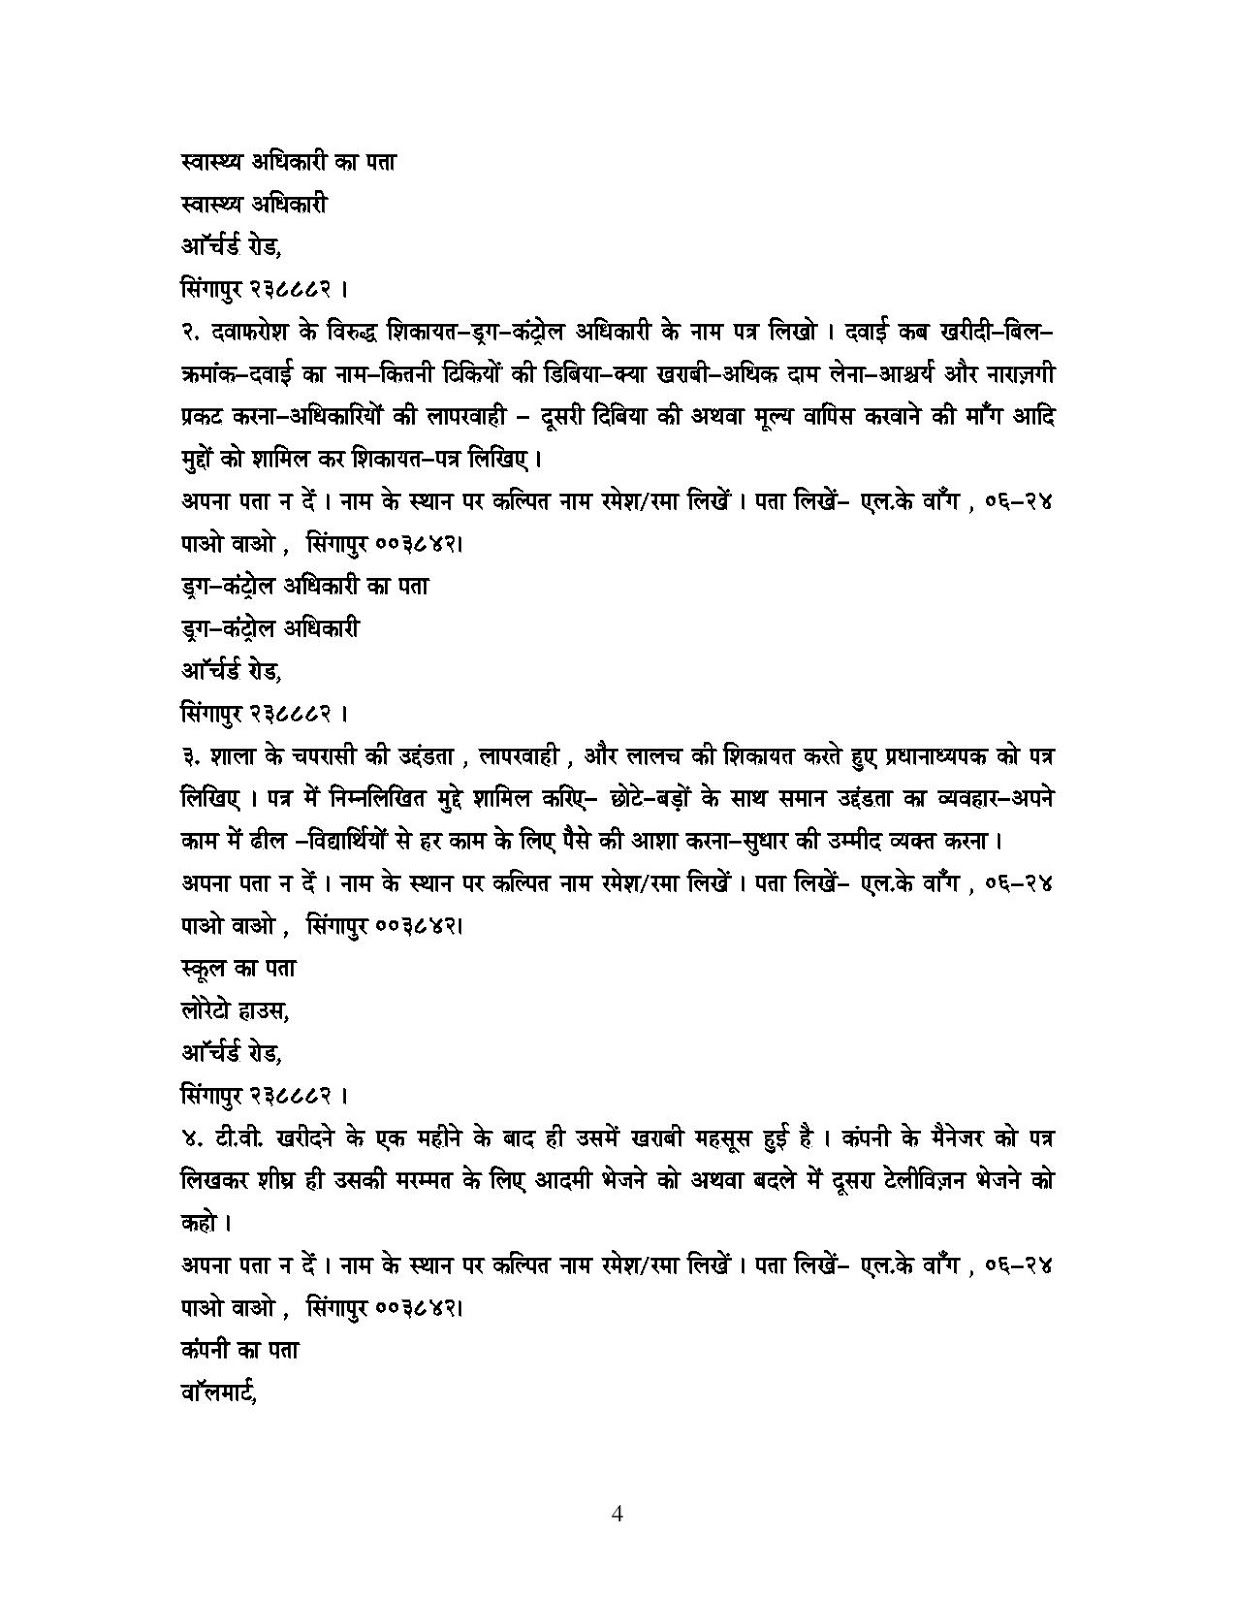 Letter writing services hindi class 8